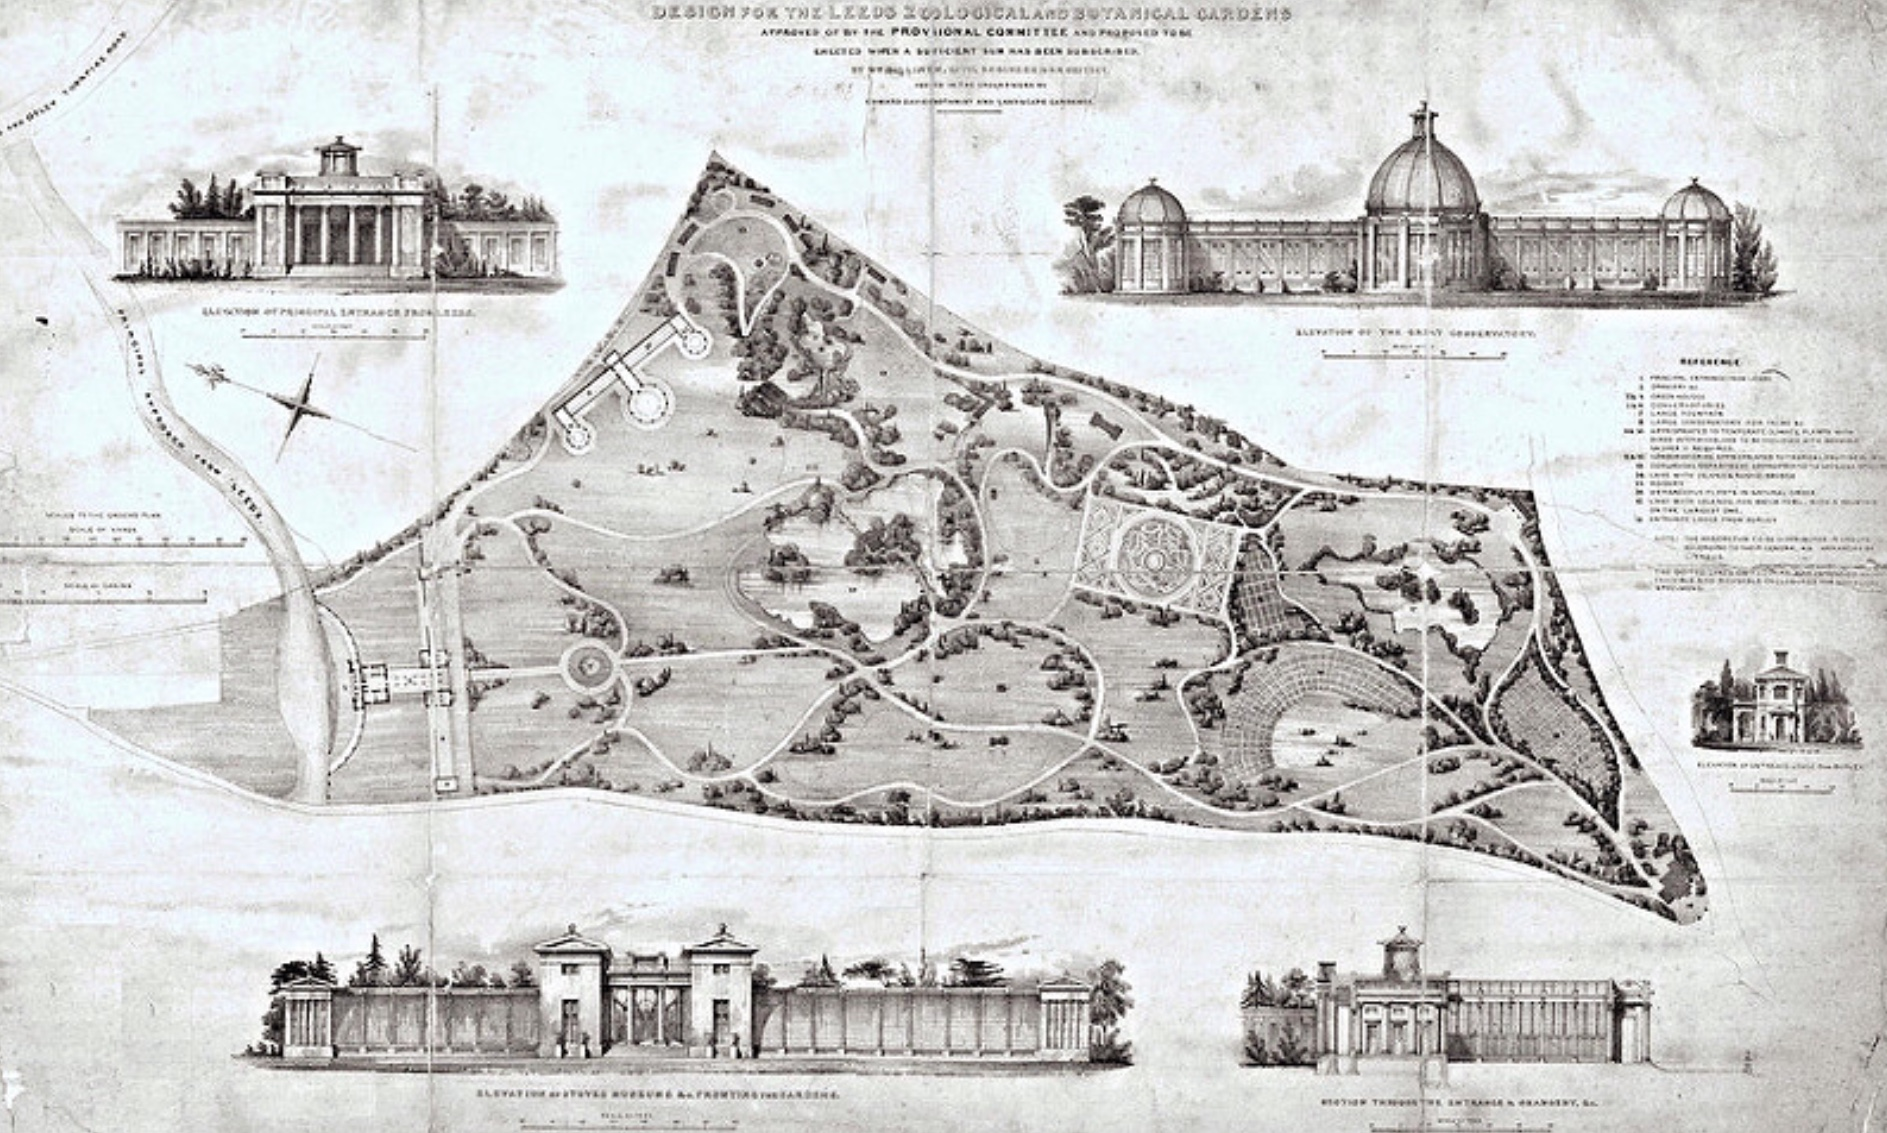 William Billinton & Edward Davies, Design for the Leeds Zoological and Botanical Gardens, 1837 (not implemented)